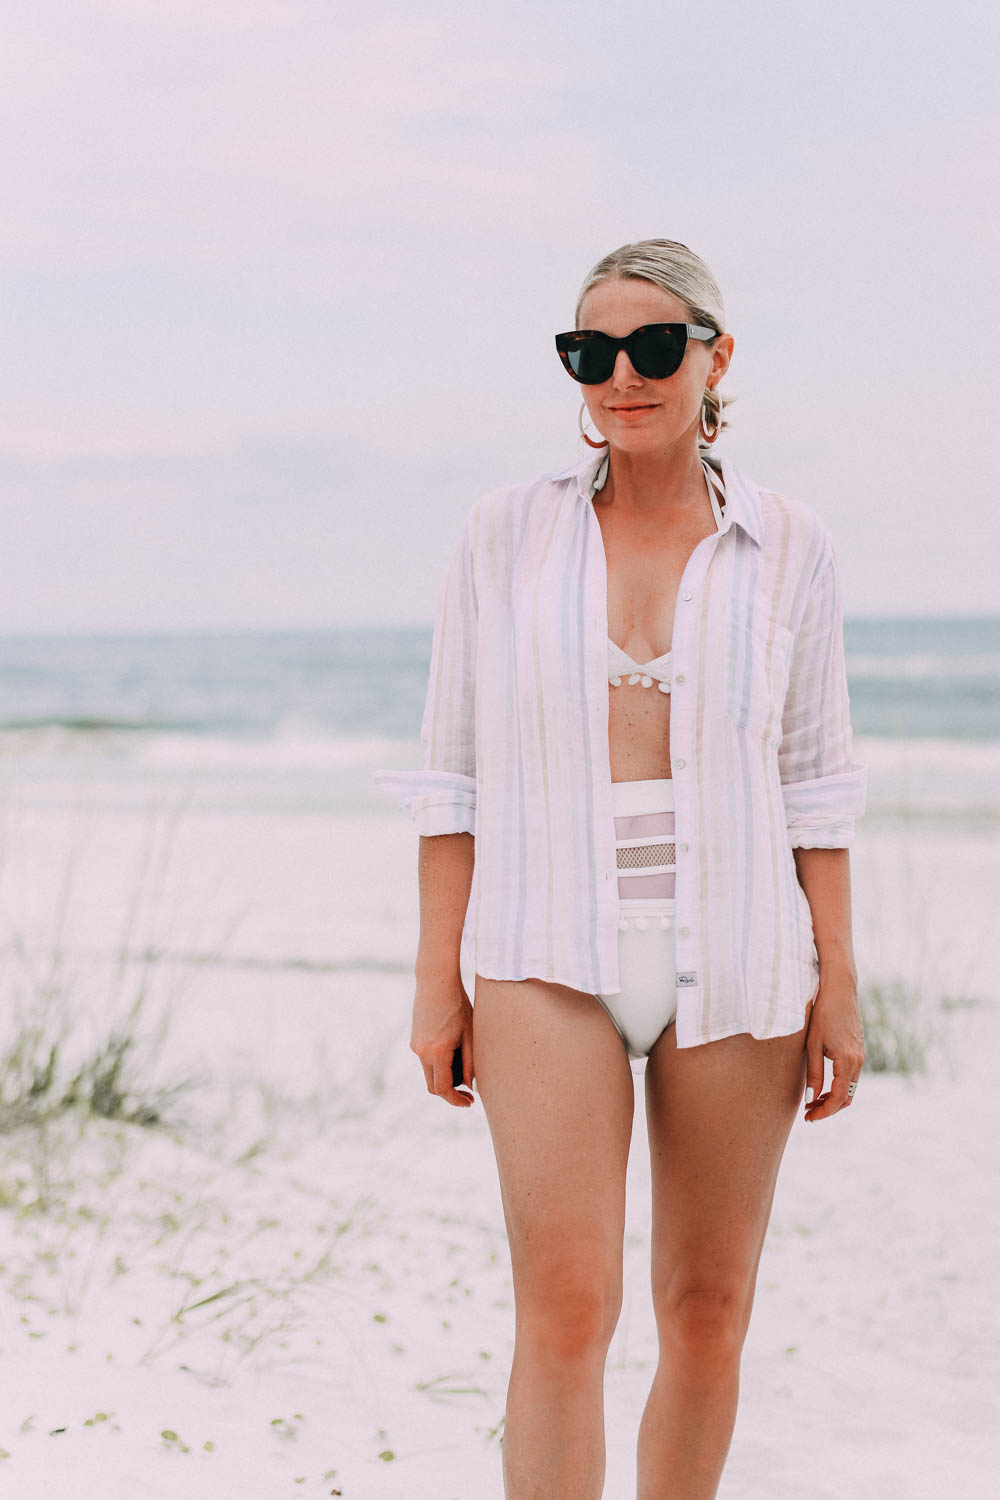 Amazon swimsuit, Fashion blogger Busbee Style wearing white bikini with pom poms from Amazon with striped Rails button down shirt on Florida beach